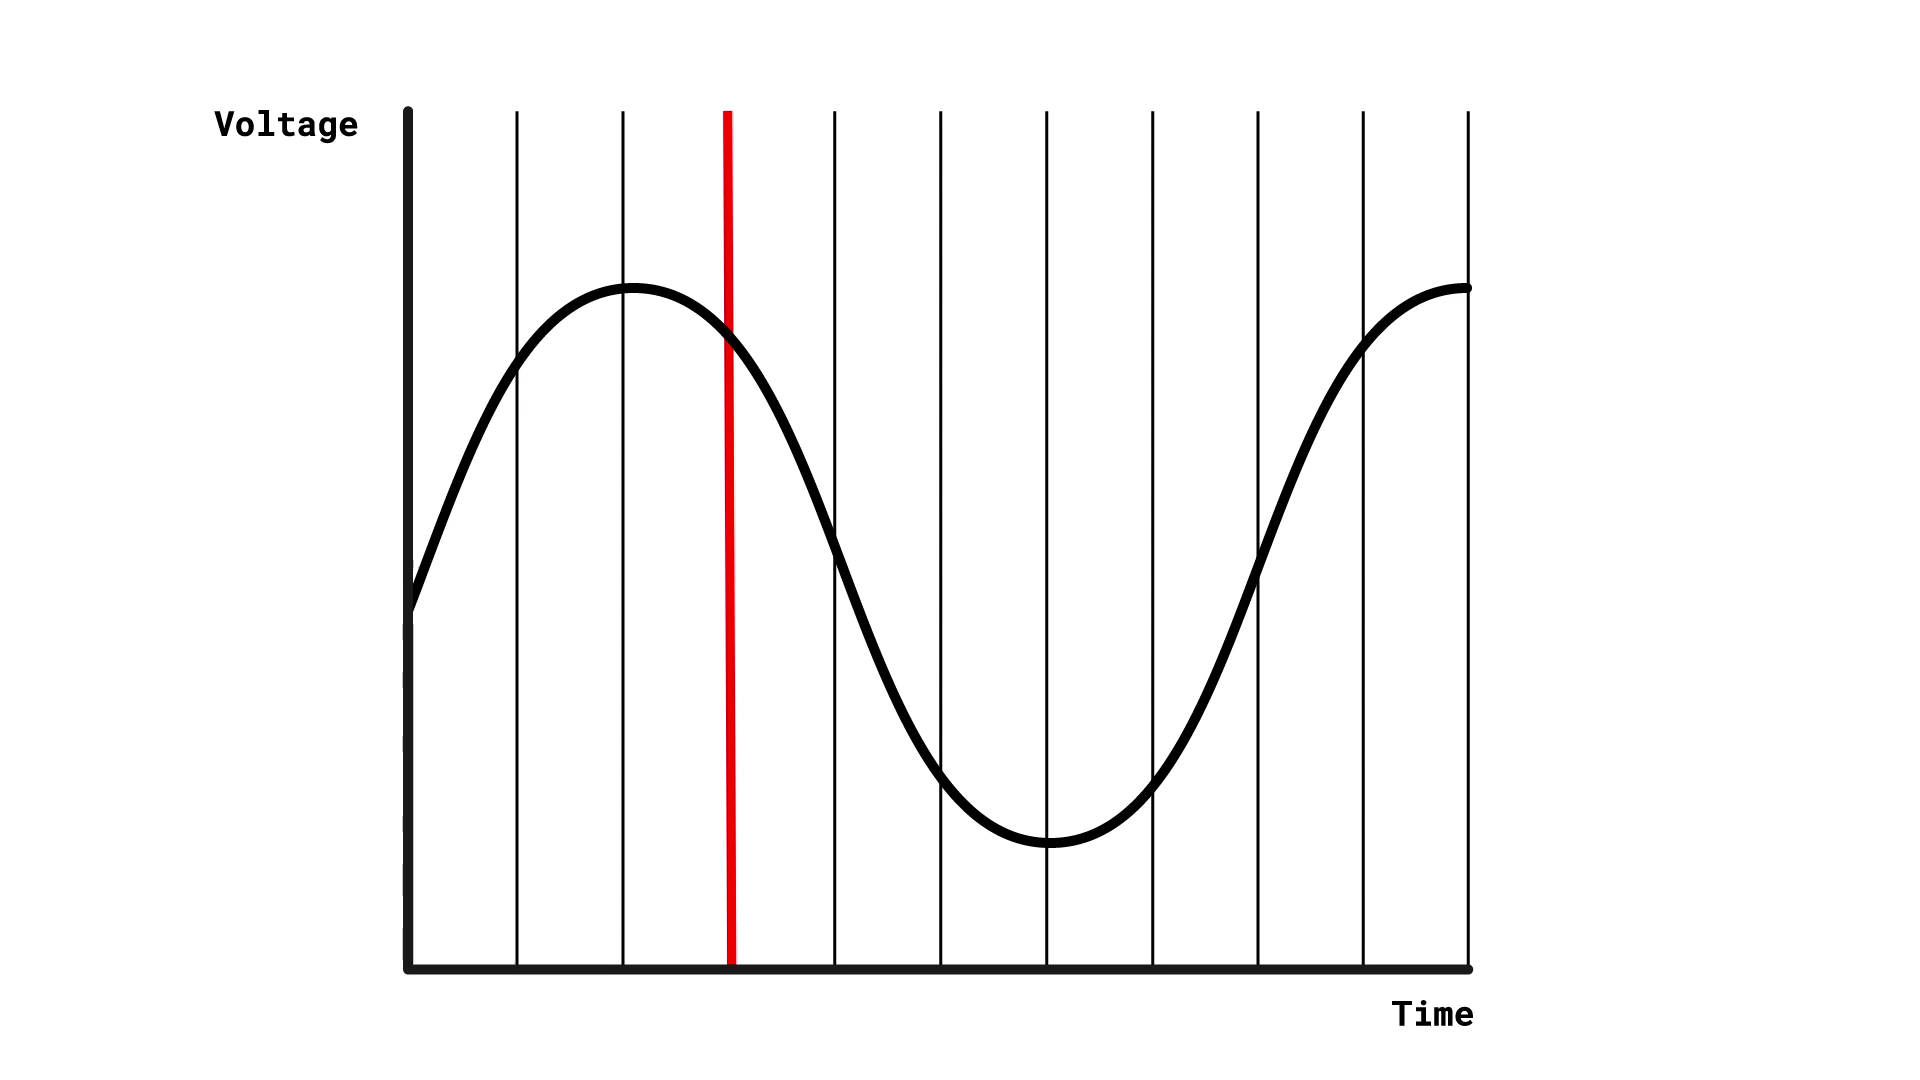 A sine wave representing a sound. Lots of equally spaced vertical lines are drawn on it. At one point approximately 1/3 of the way along the x-axis, one of these is red.